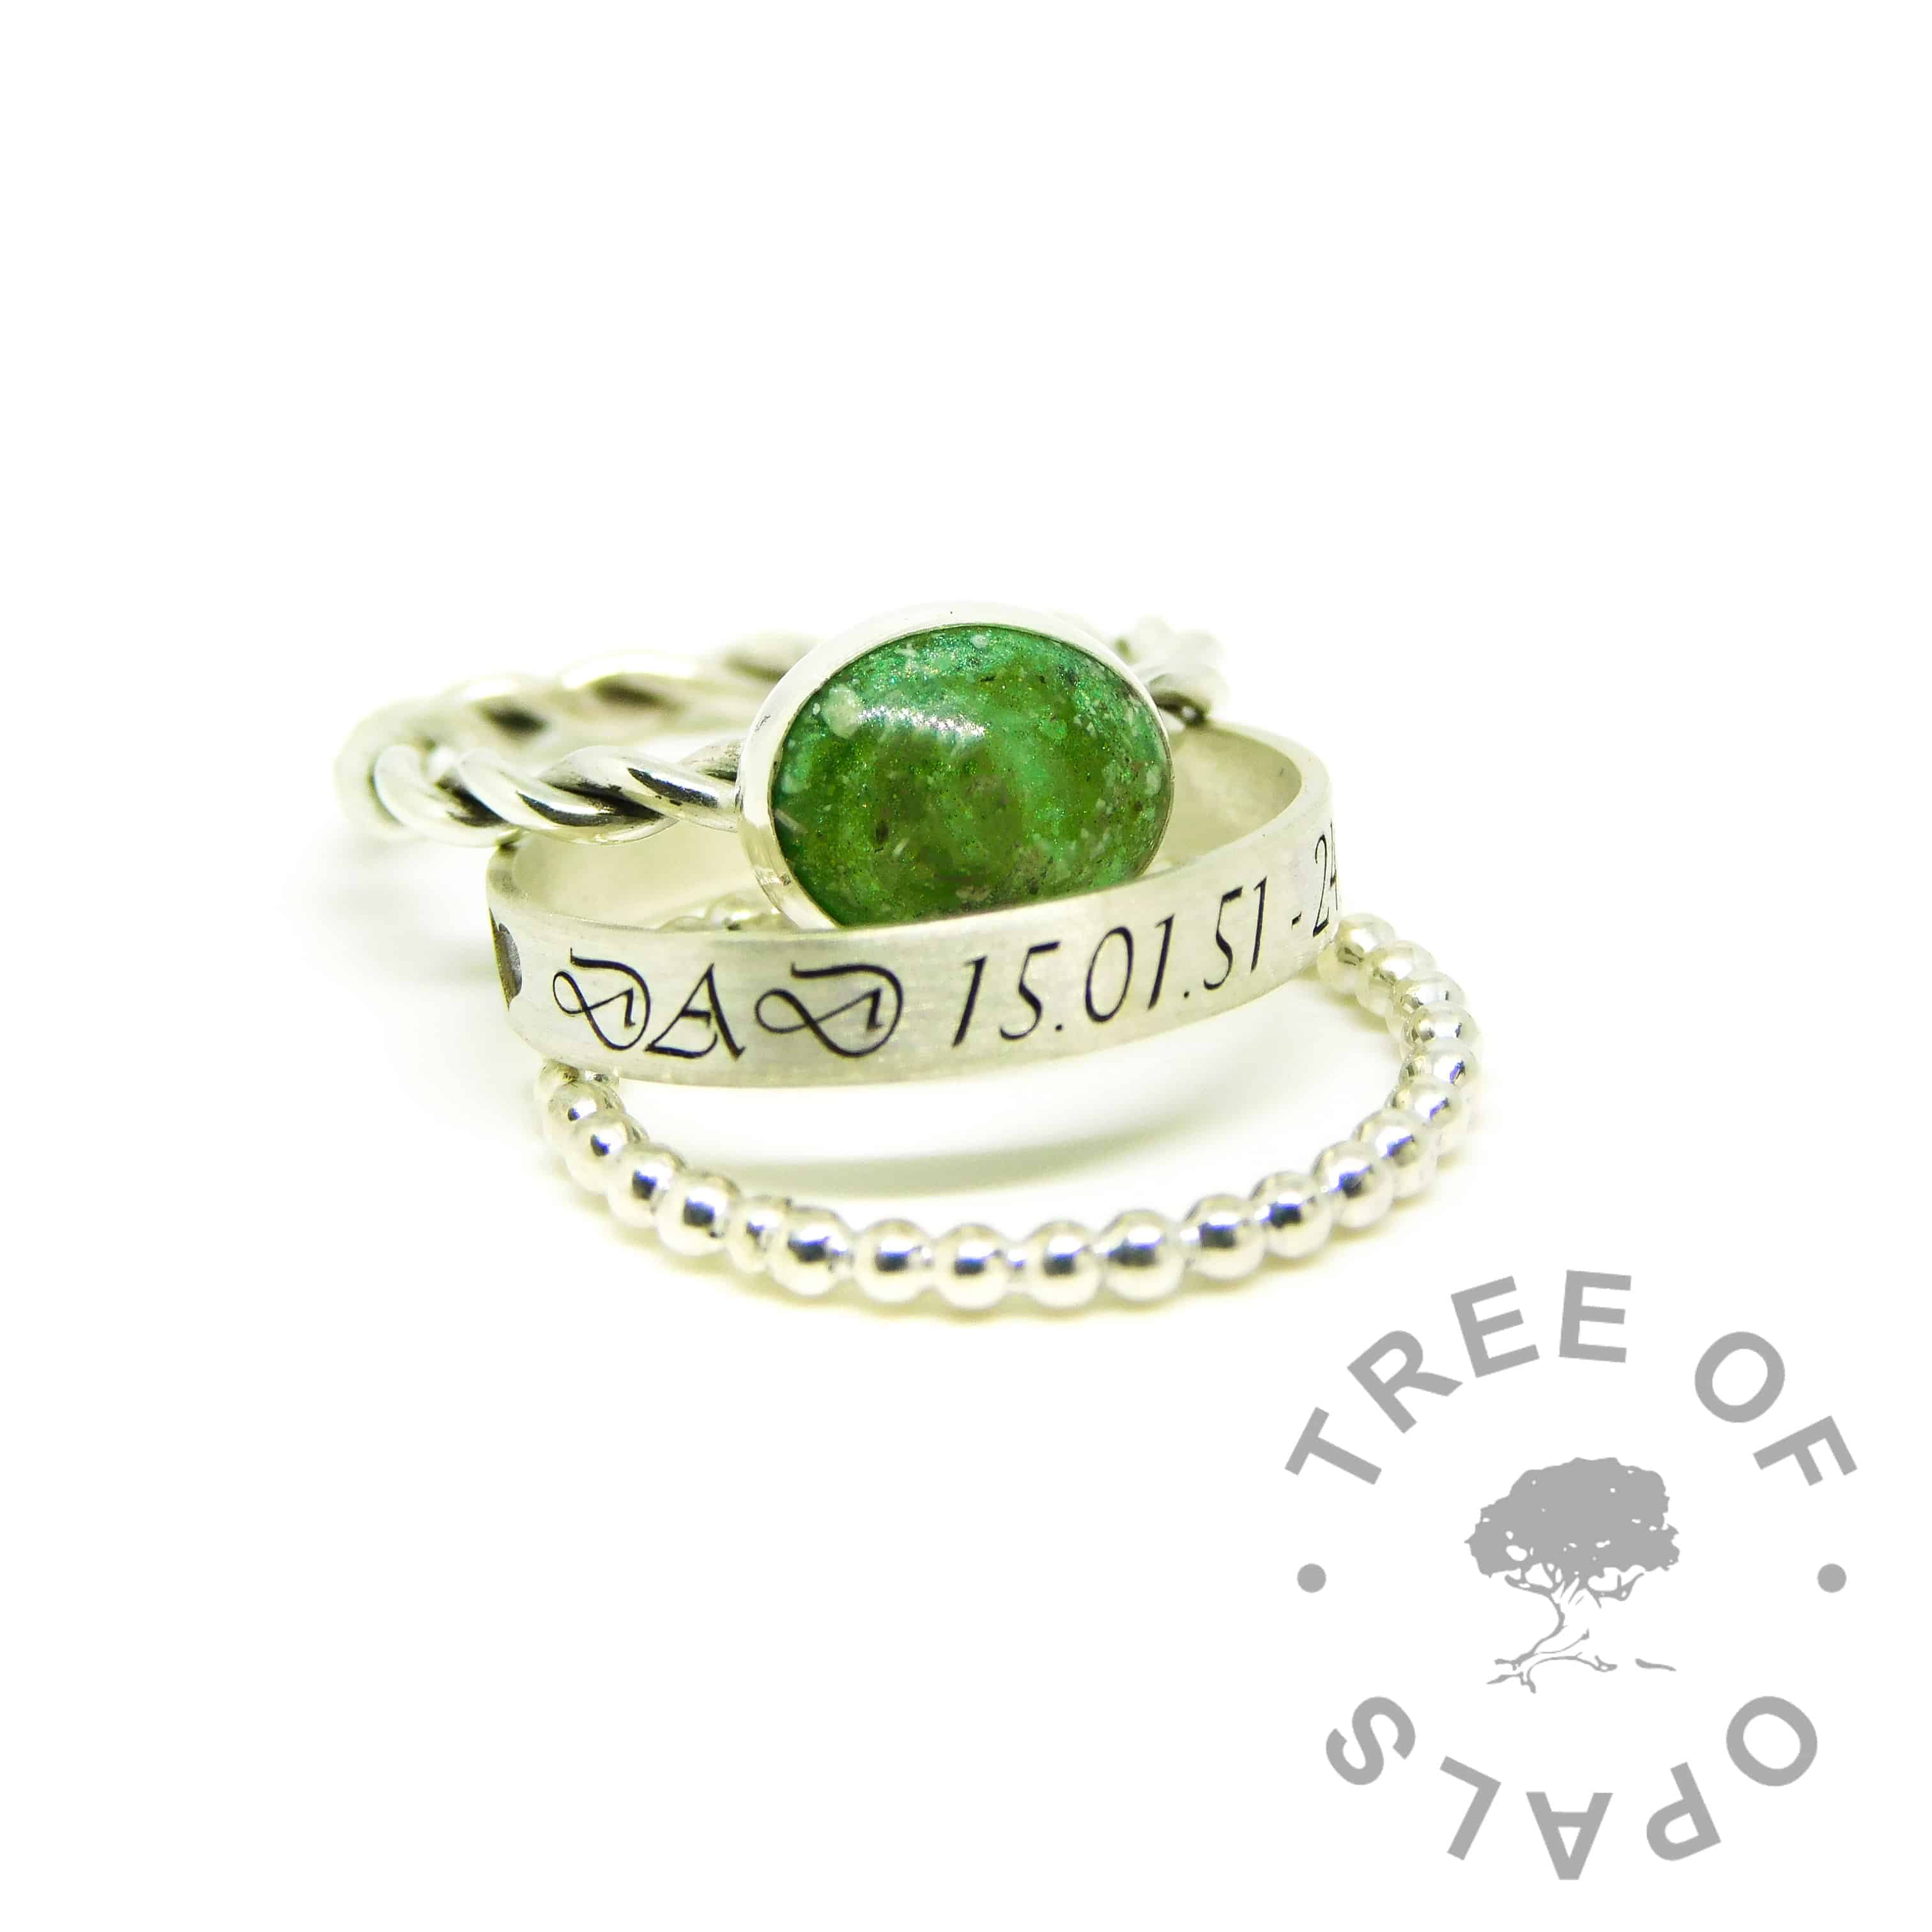 ashes jewellery rings, engraved 3mm brushed band with allcaps Vivaldi font on the outside of the band, bubble wire stacking ring, basilisk green resin ashes ring on twisted wire band